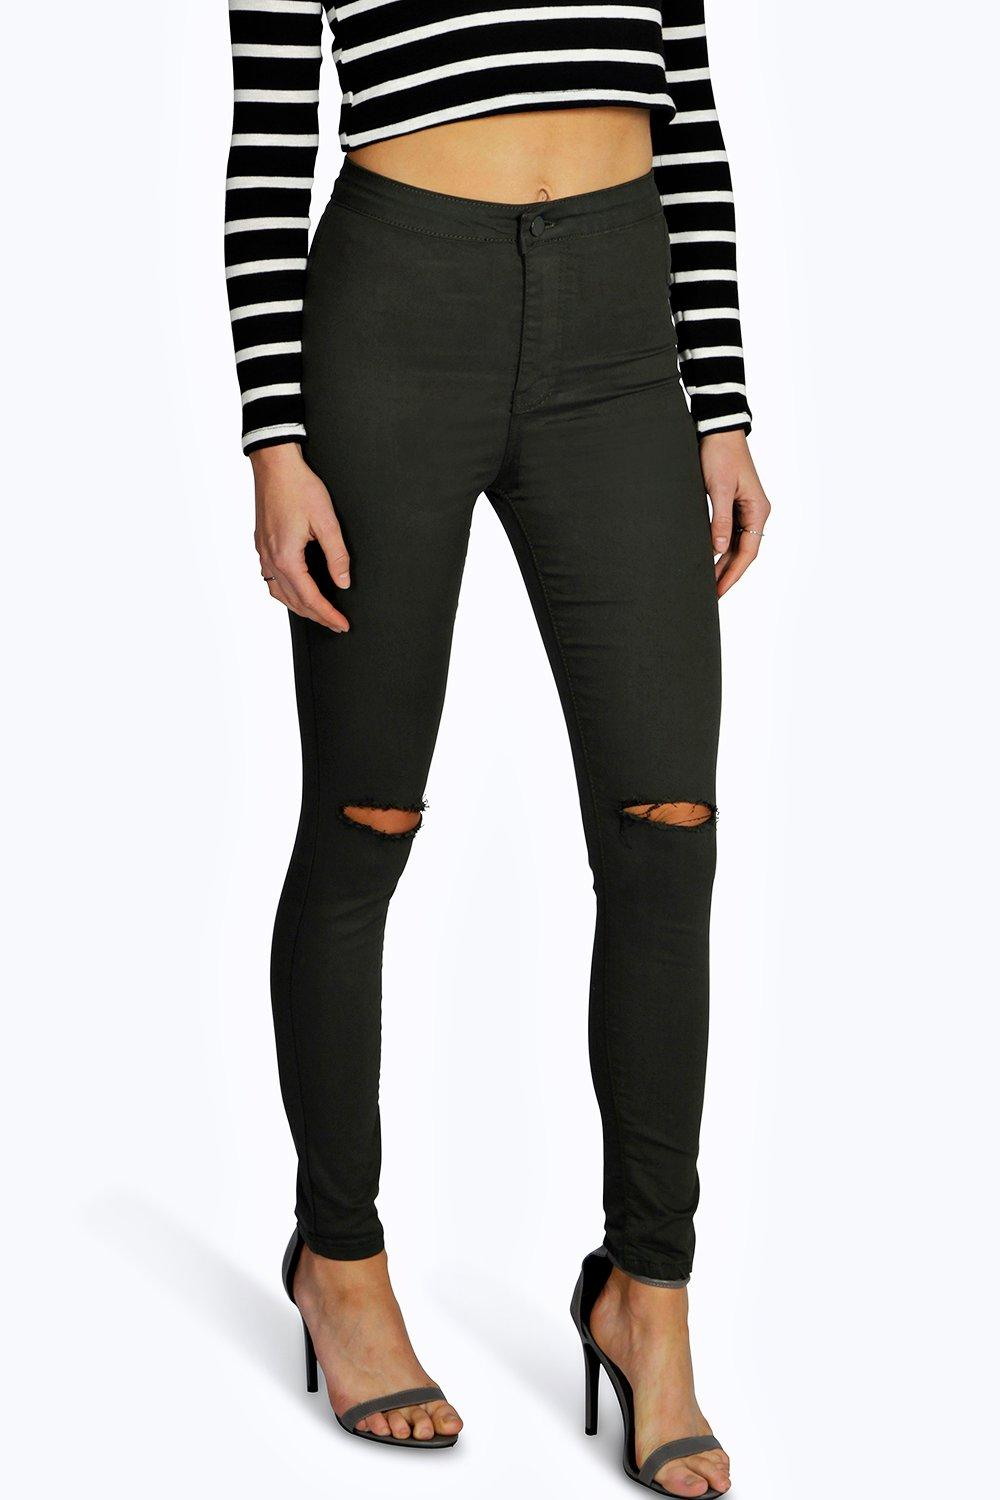 Skinny Ripped Jeans For Women